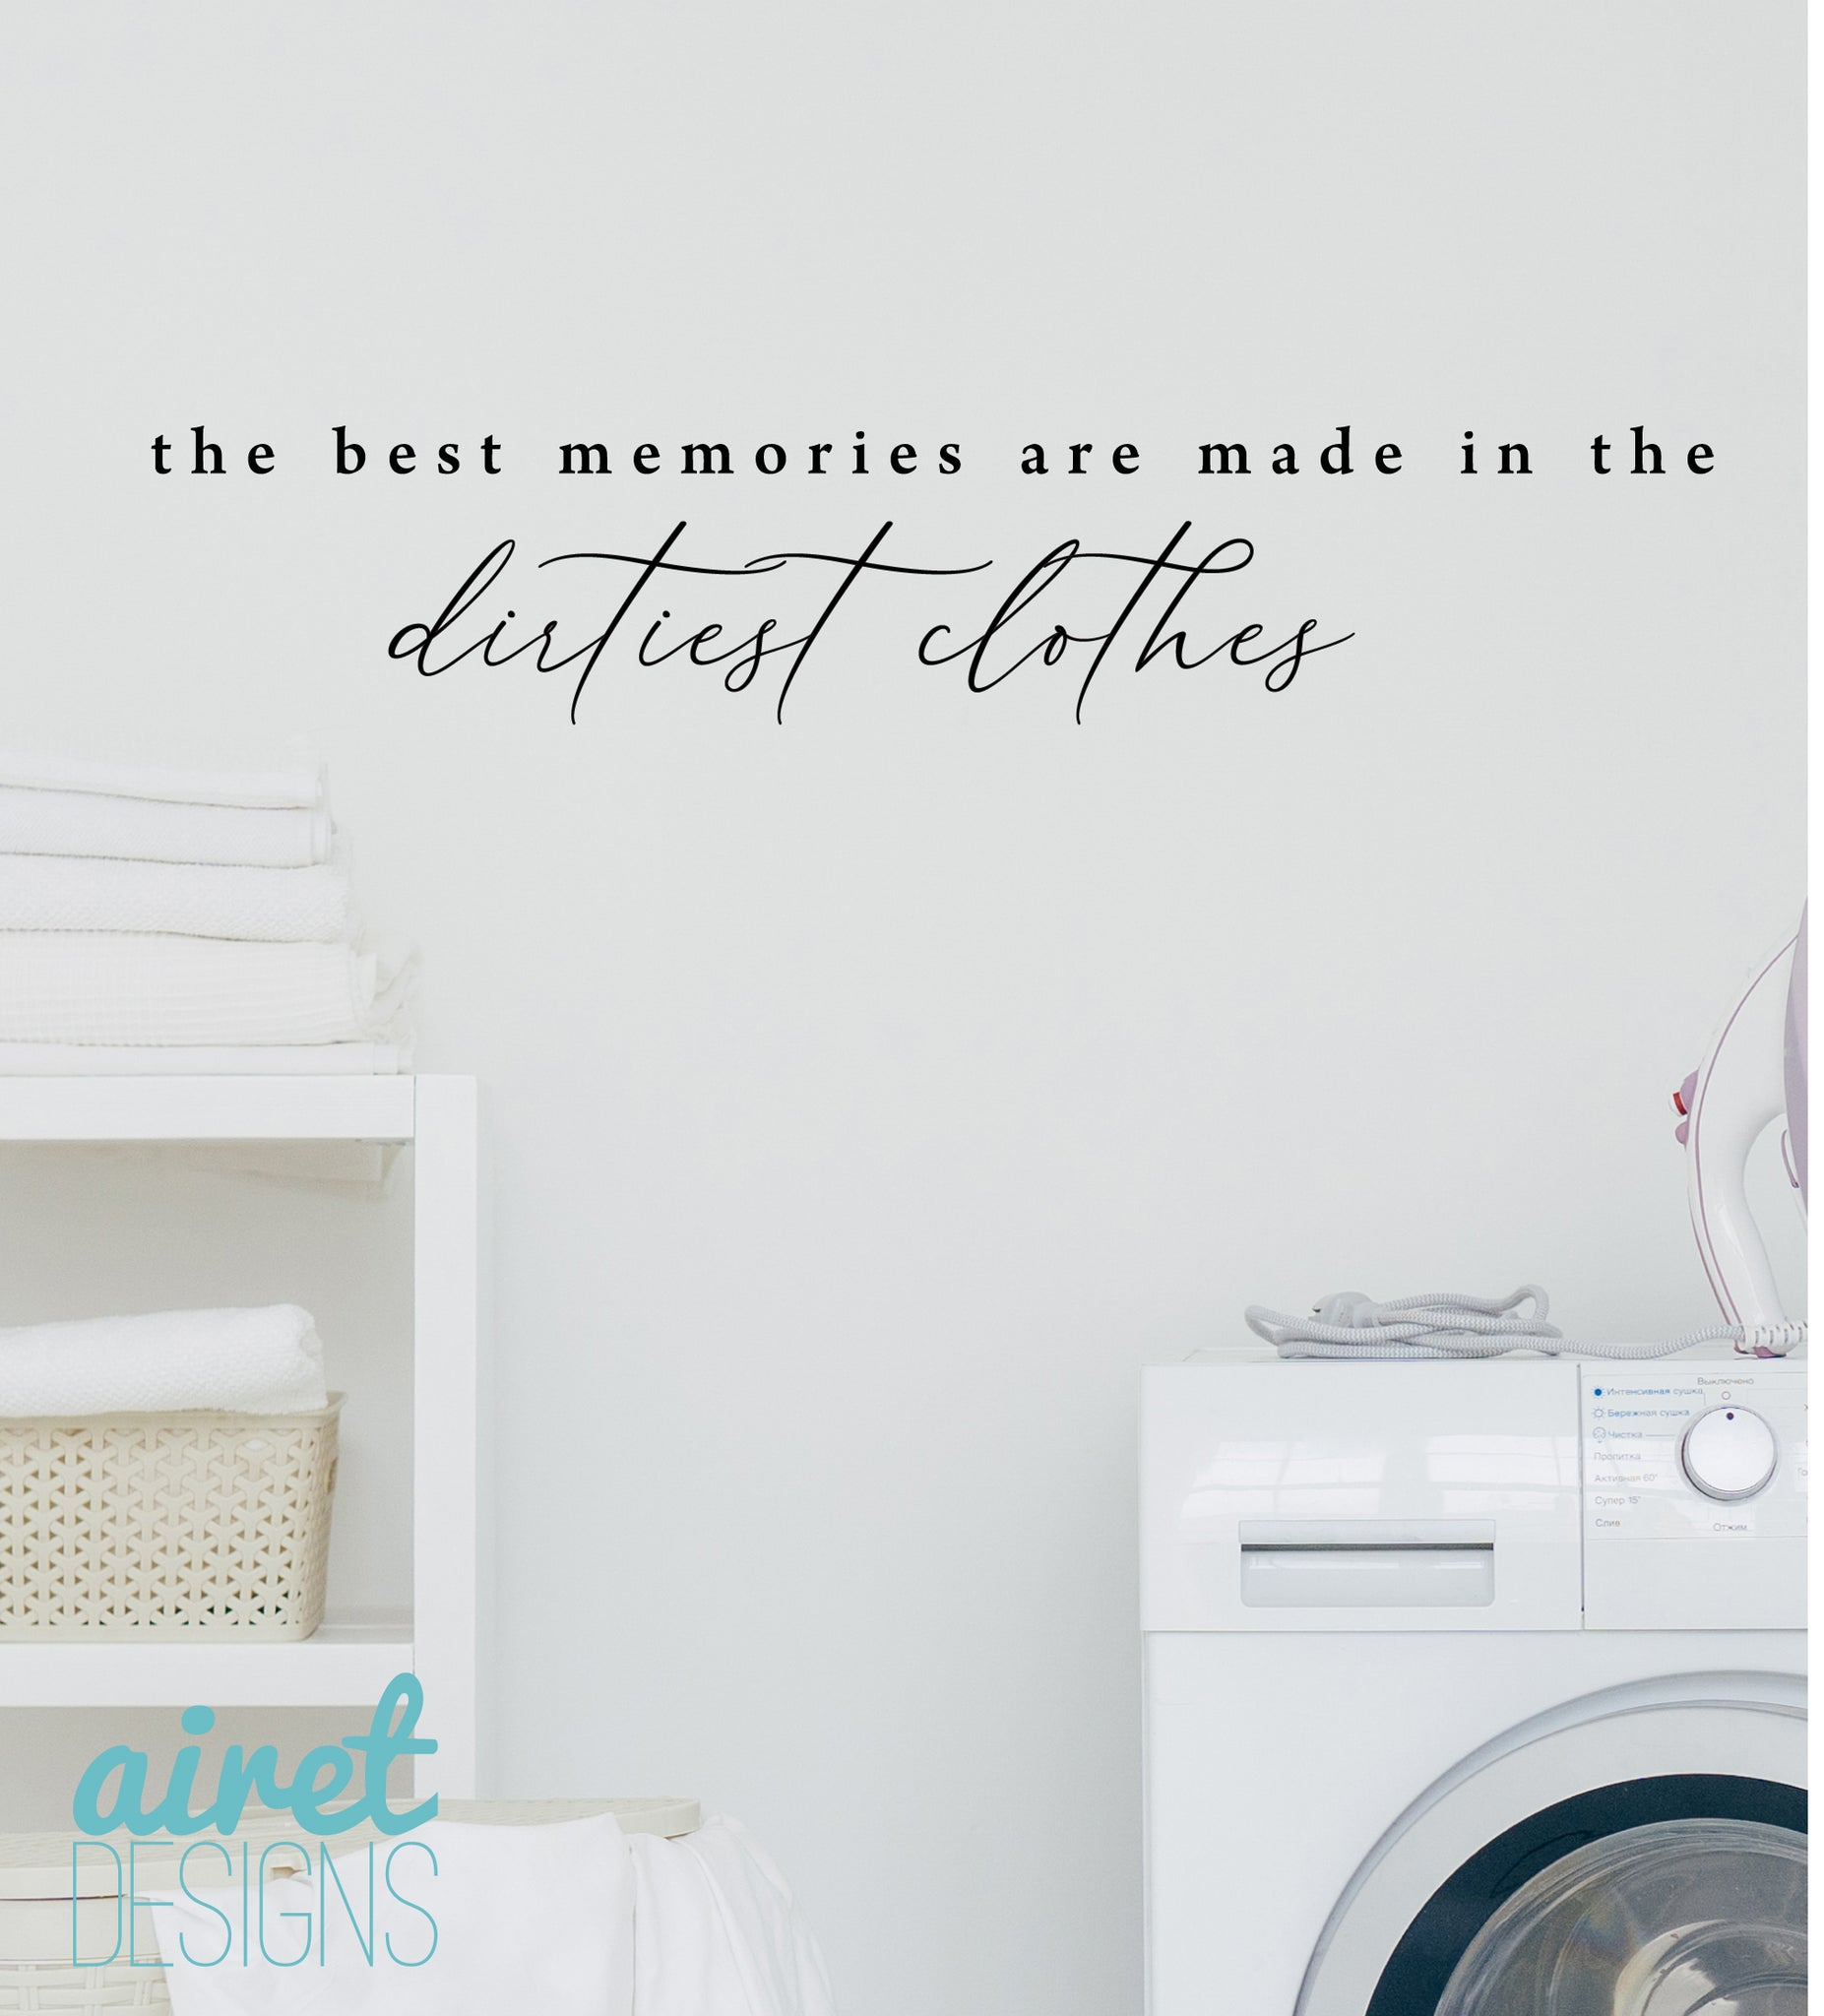 The Best Memories are Made in the Dirtiest Clothes v7